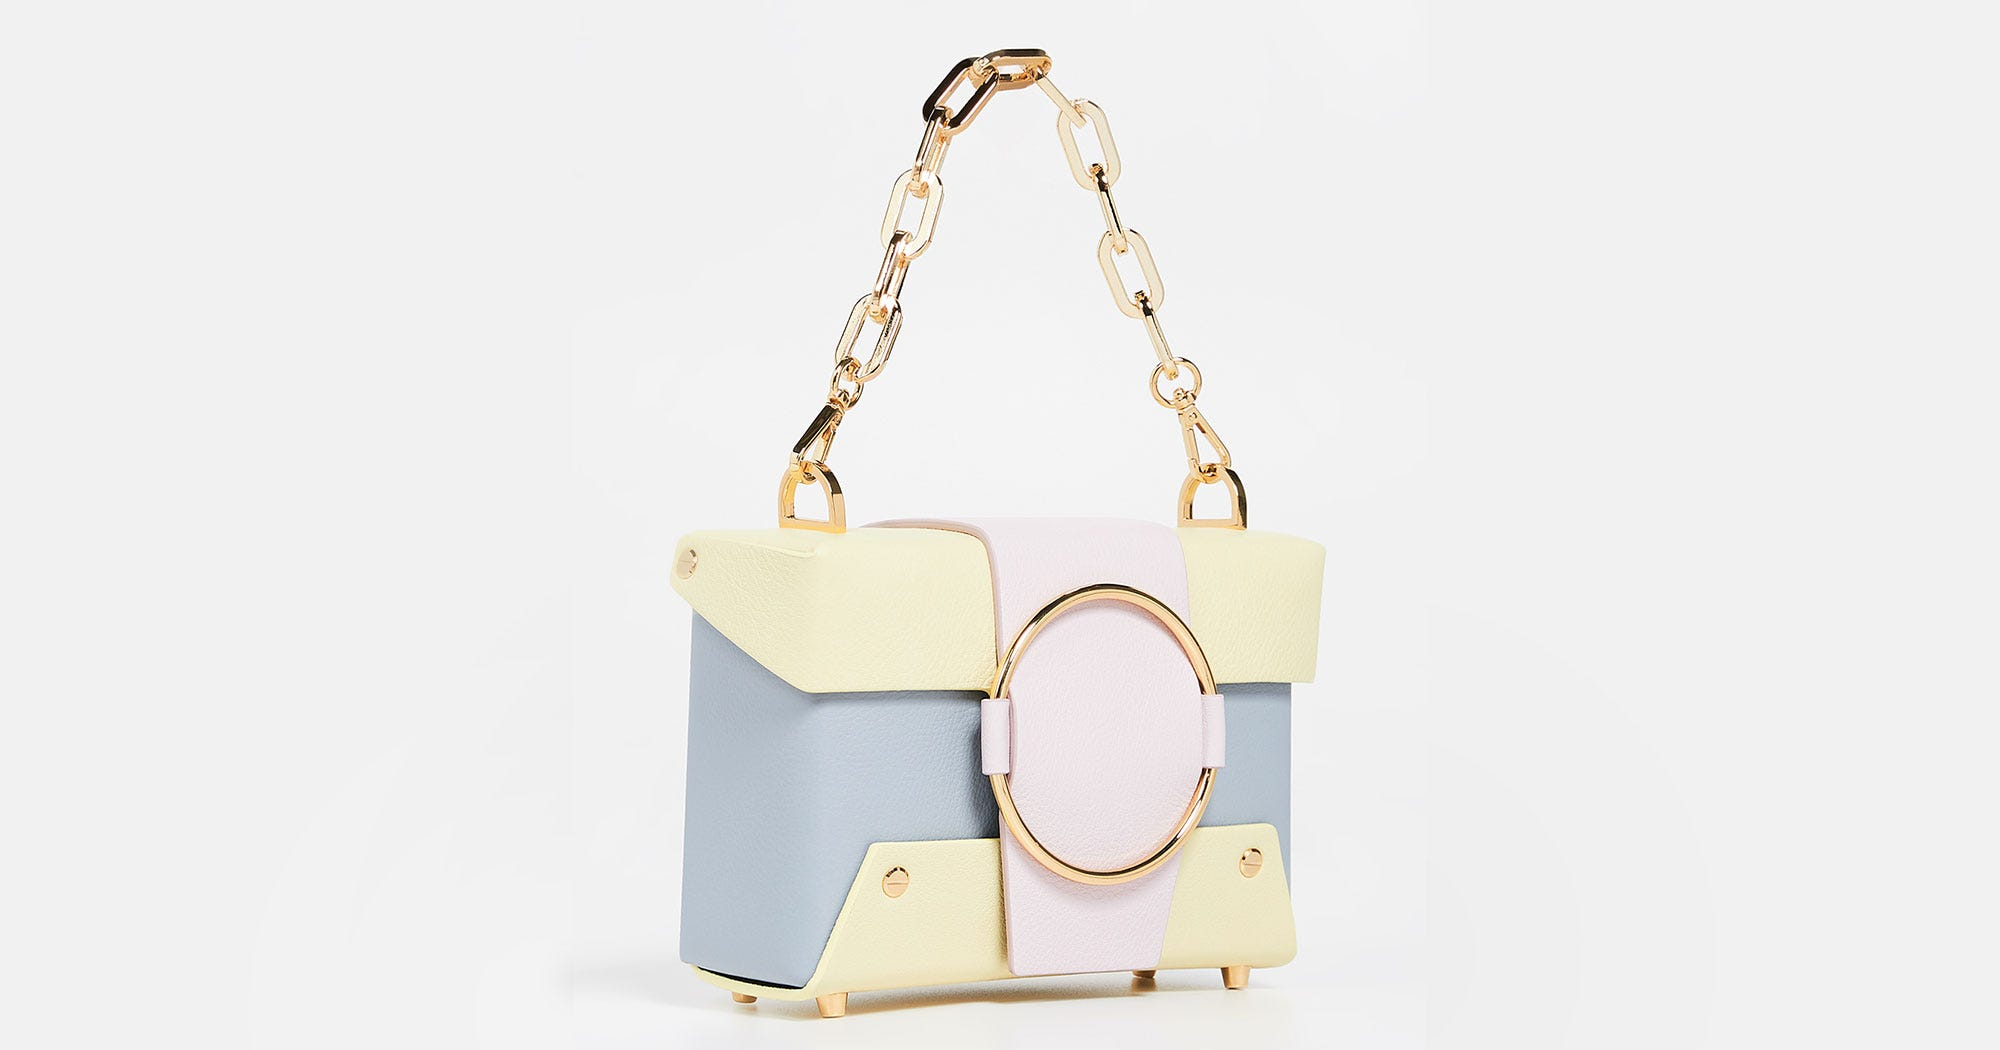 265c758478f5ff Handbag Trends For Spring 2019, Purse And Bags To Buy